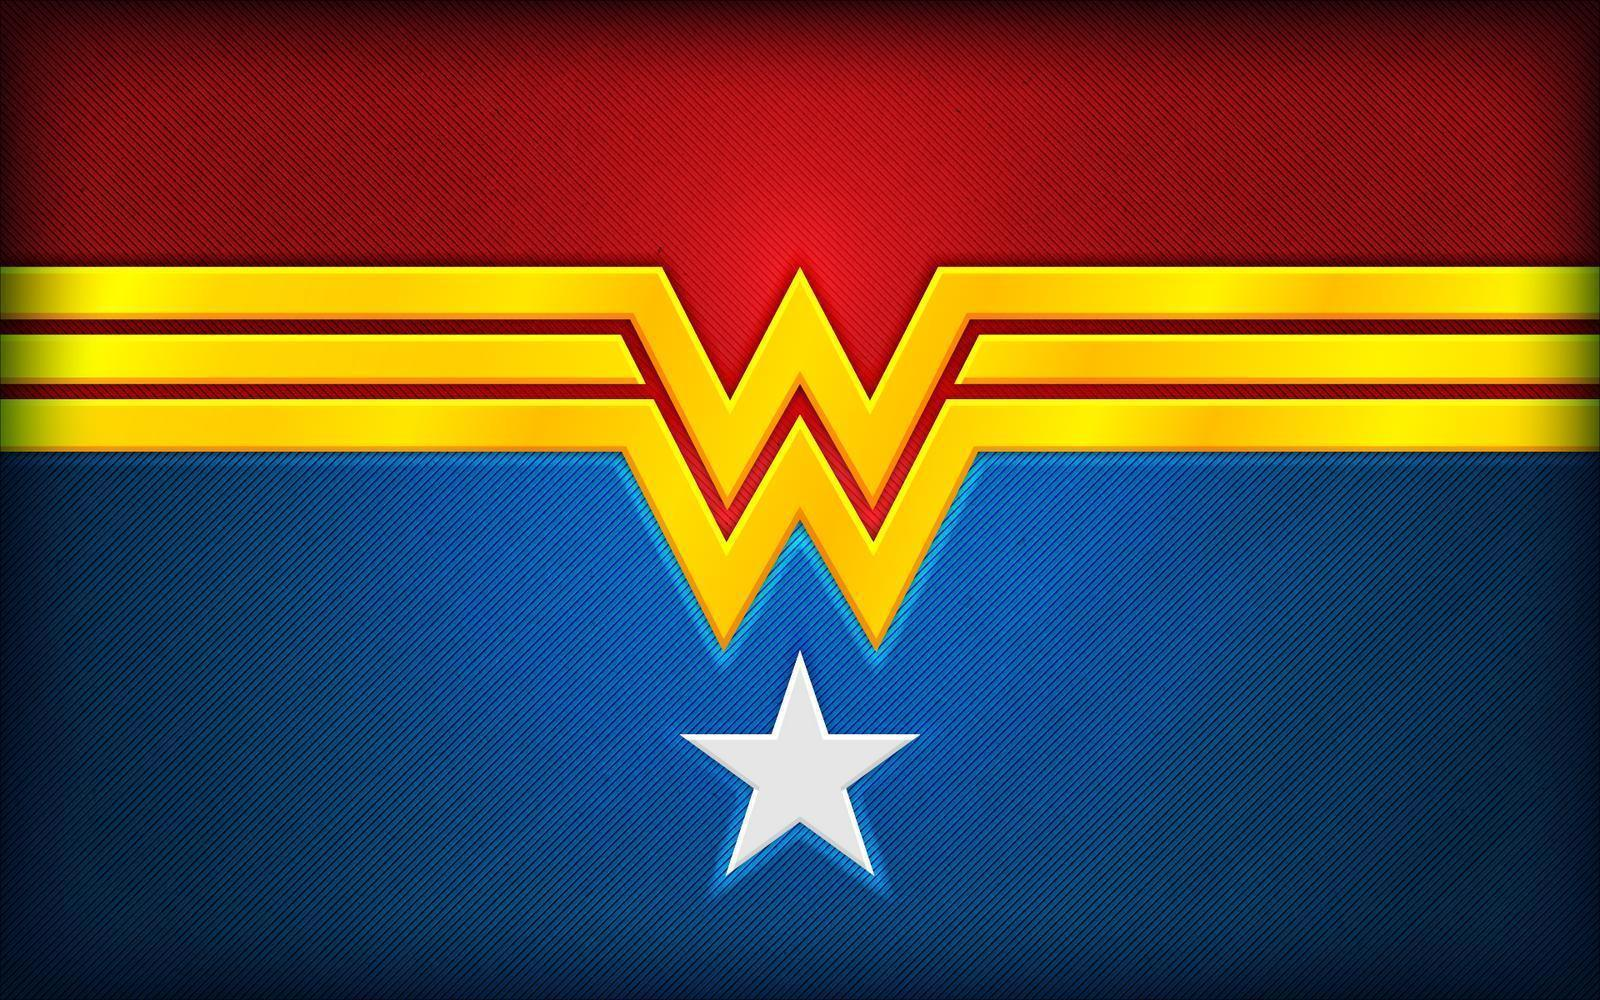 wonder woman logo wallpapers wallpaper cave. Black Bedroom Furniture Sets. Home Design Ideas